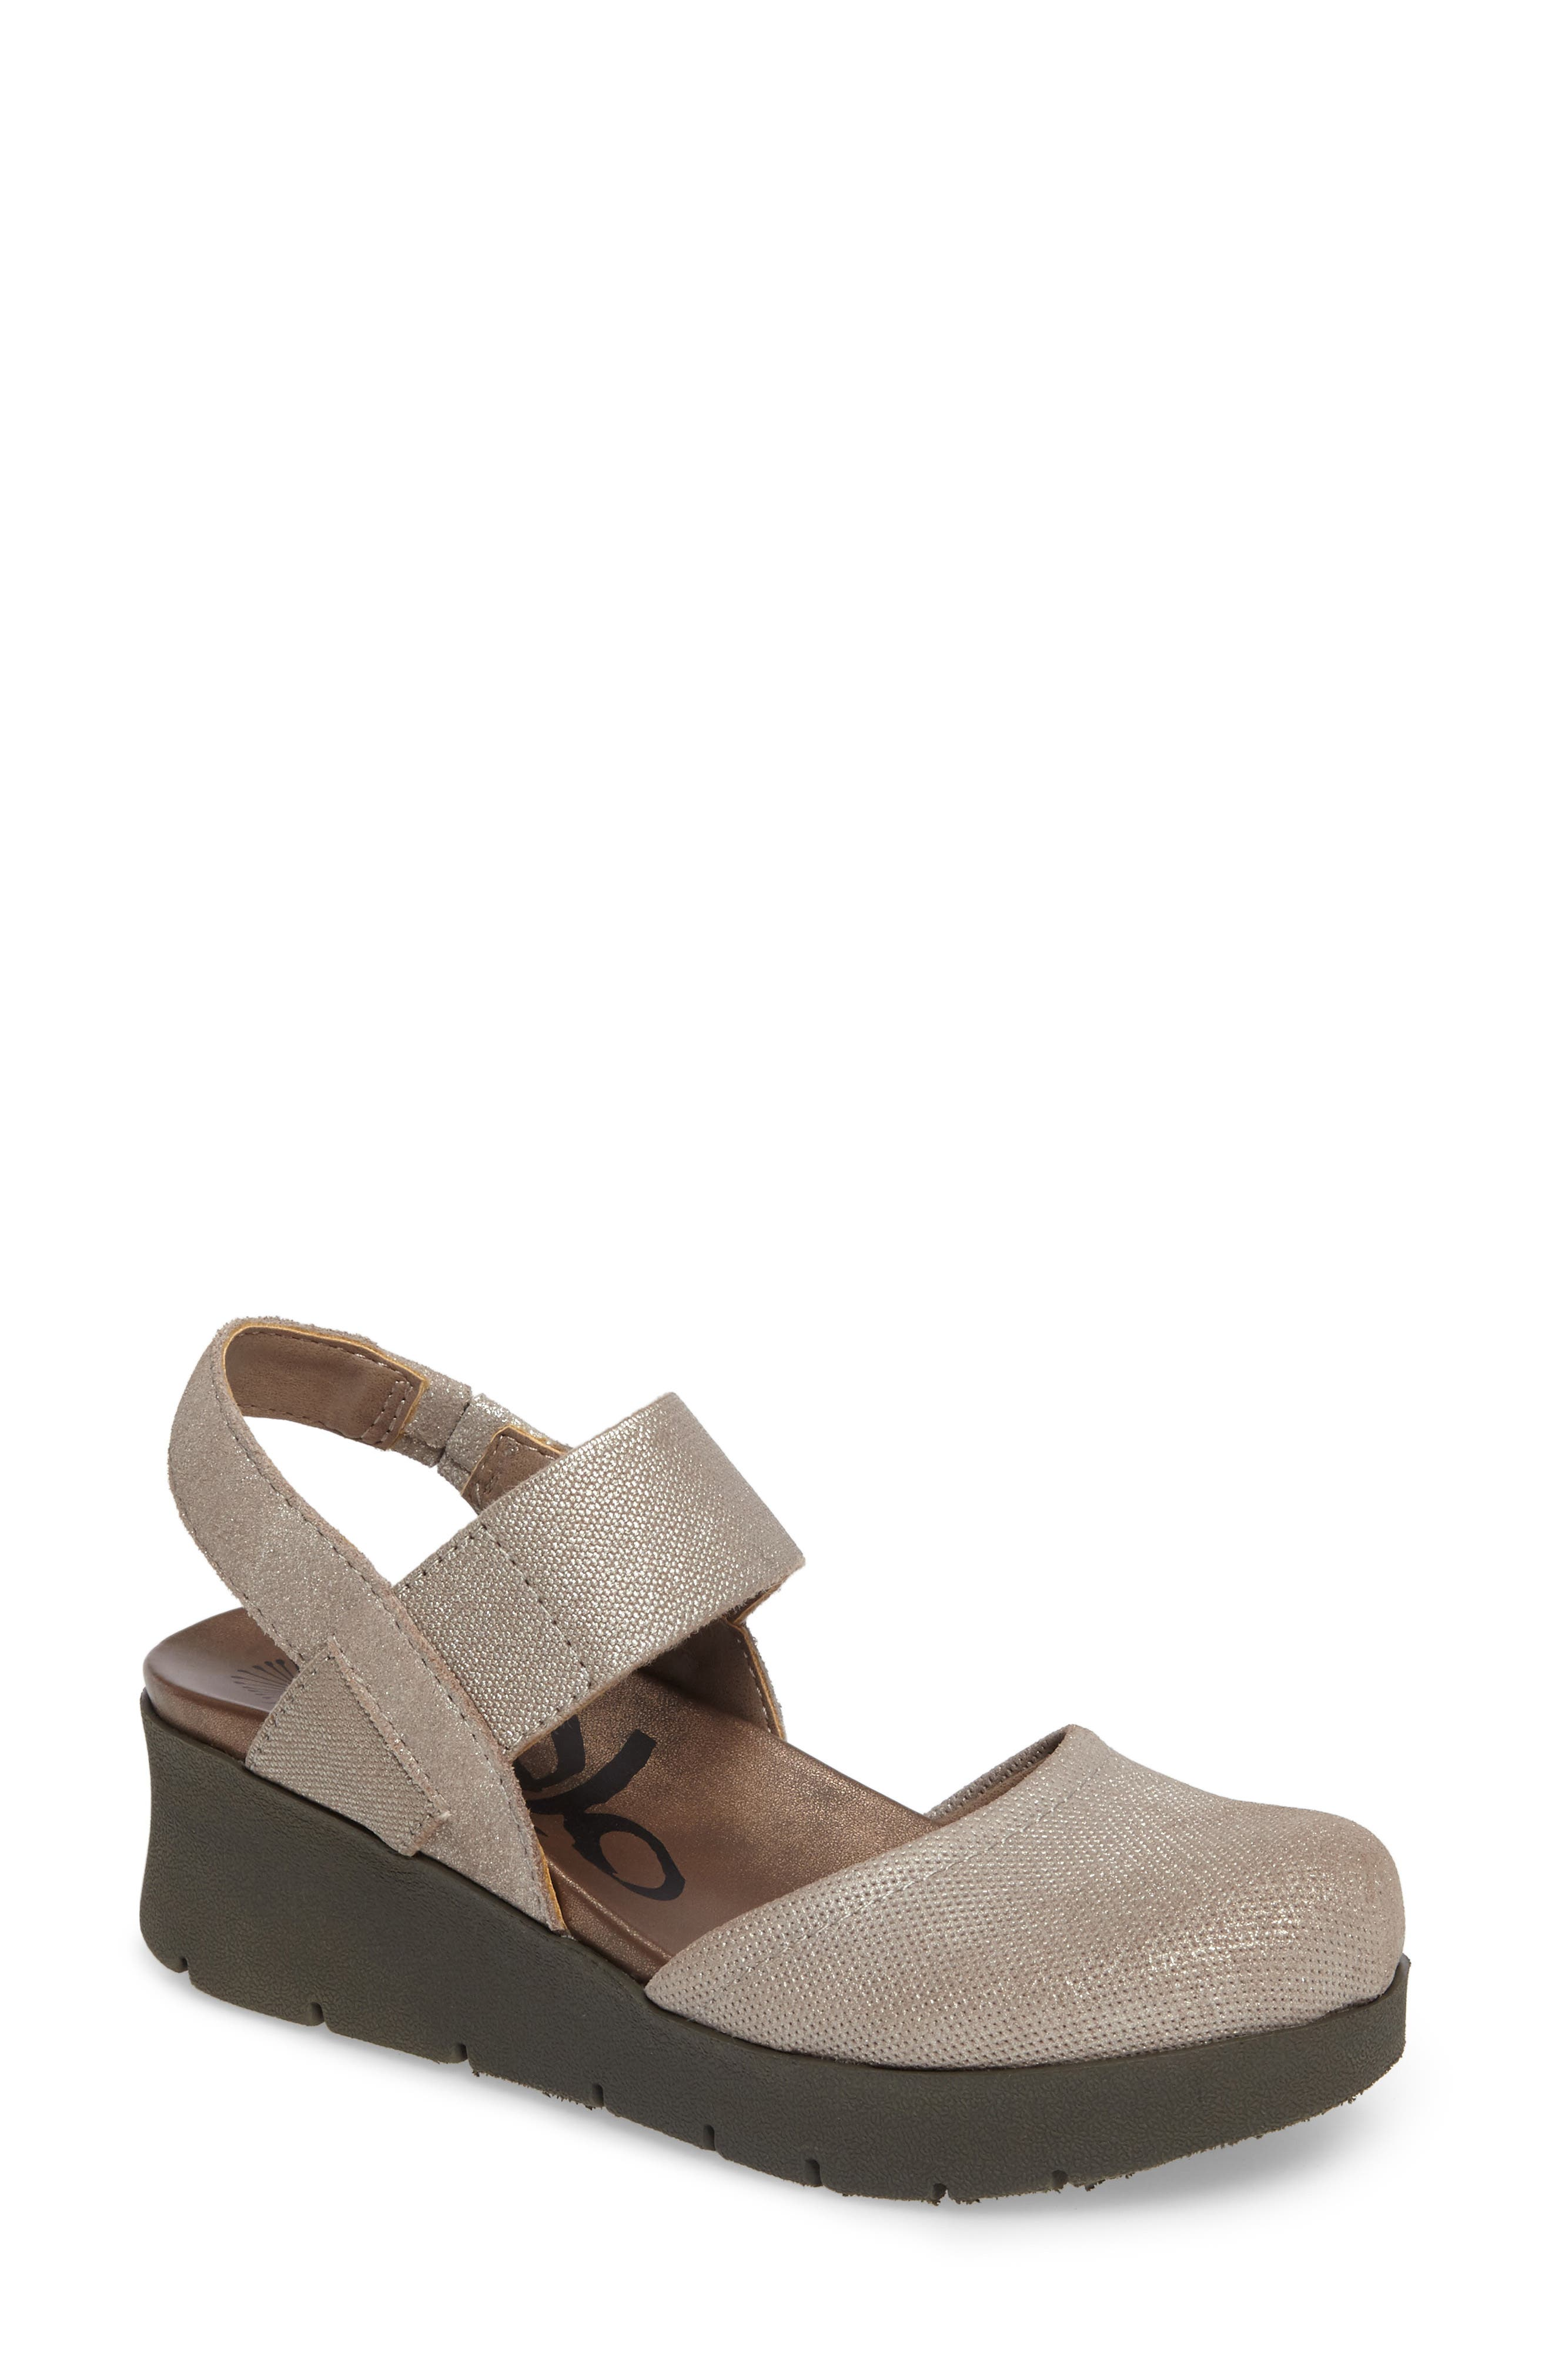 OTBT Roadie Mary Jane Platform Wedge (Women)